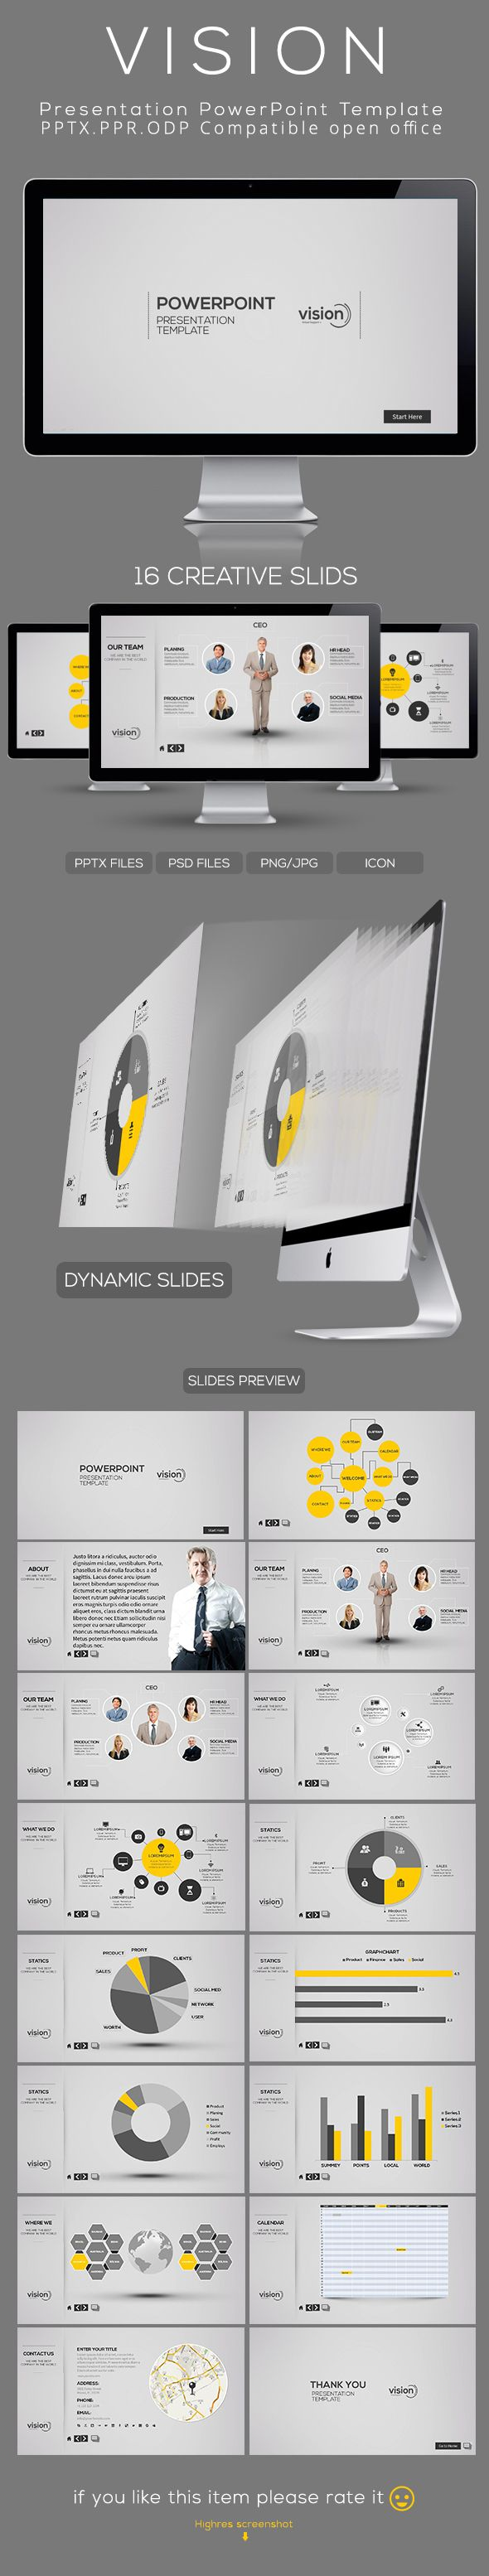 best 25+ professional powerpoint ideas on pinterest | professional, Presentation templates